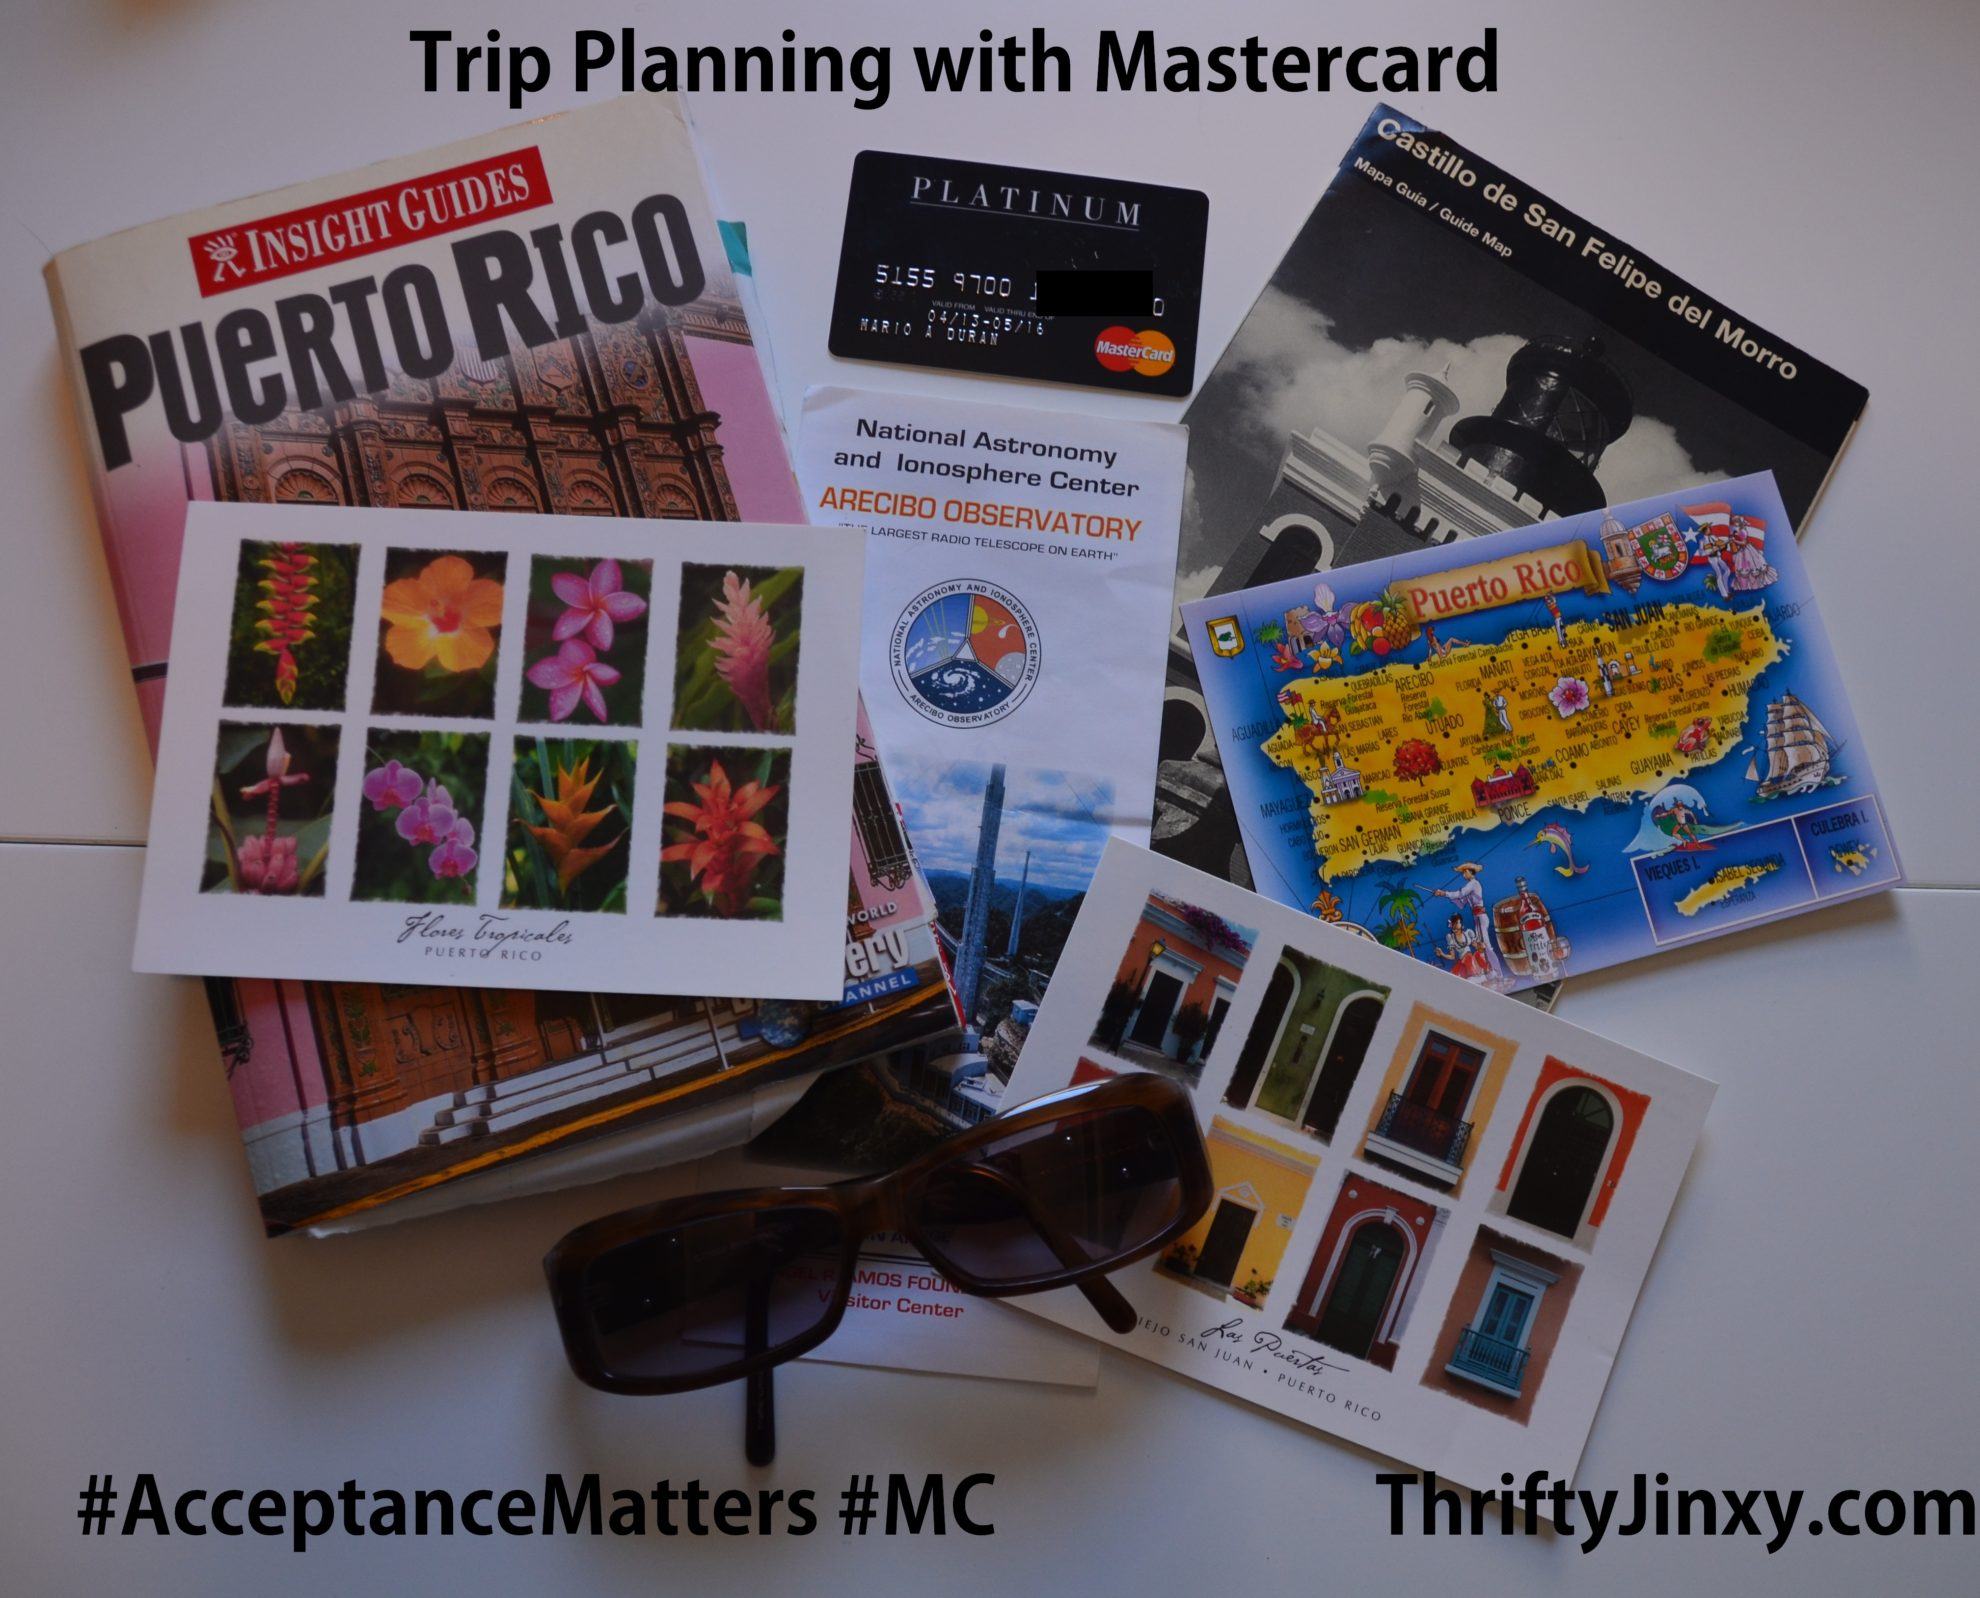 Our Visit to Puerto Rico – We Learned MasterCard is Accepted Everywhere! #AcceptanceMatters #MC